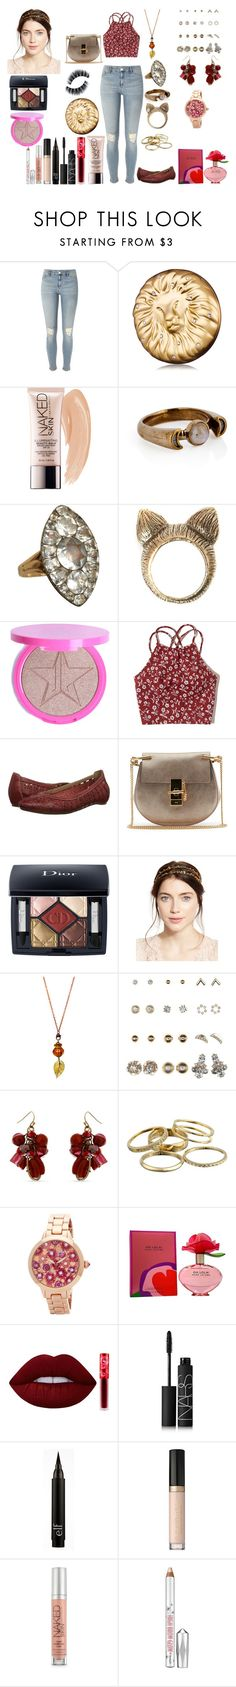 """""""Untitled #594"""" by asiebenthaler ❤ liked on Polyvore featuring River Island, Estée Lauder, Urban Decay, Pamela Love, Olivia Collings Antique Jewelry, Hollister Co., Pikolinos, Chloé, Christian Dior and Jennifer Behr"""